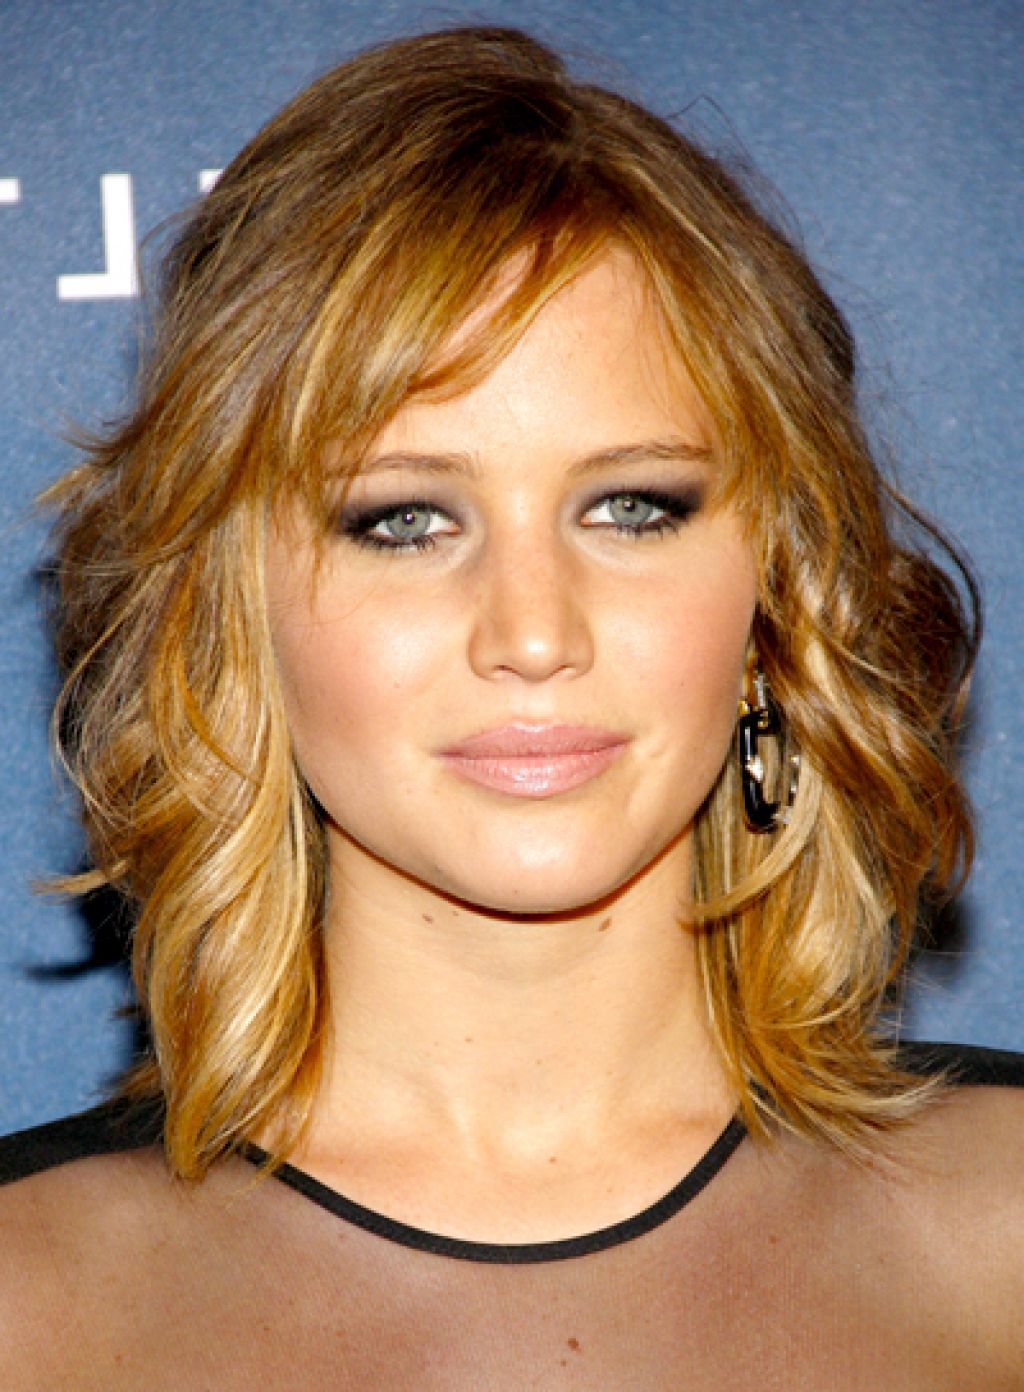 Wavy hairstyles shoulder length hair model hairstyles new do ideas